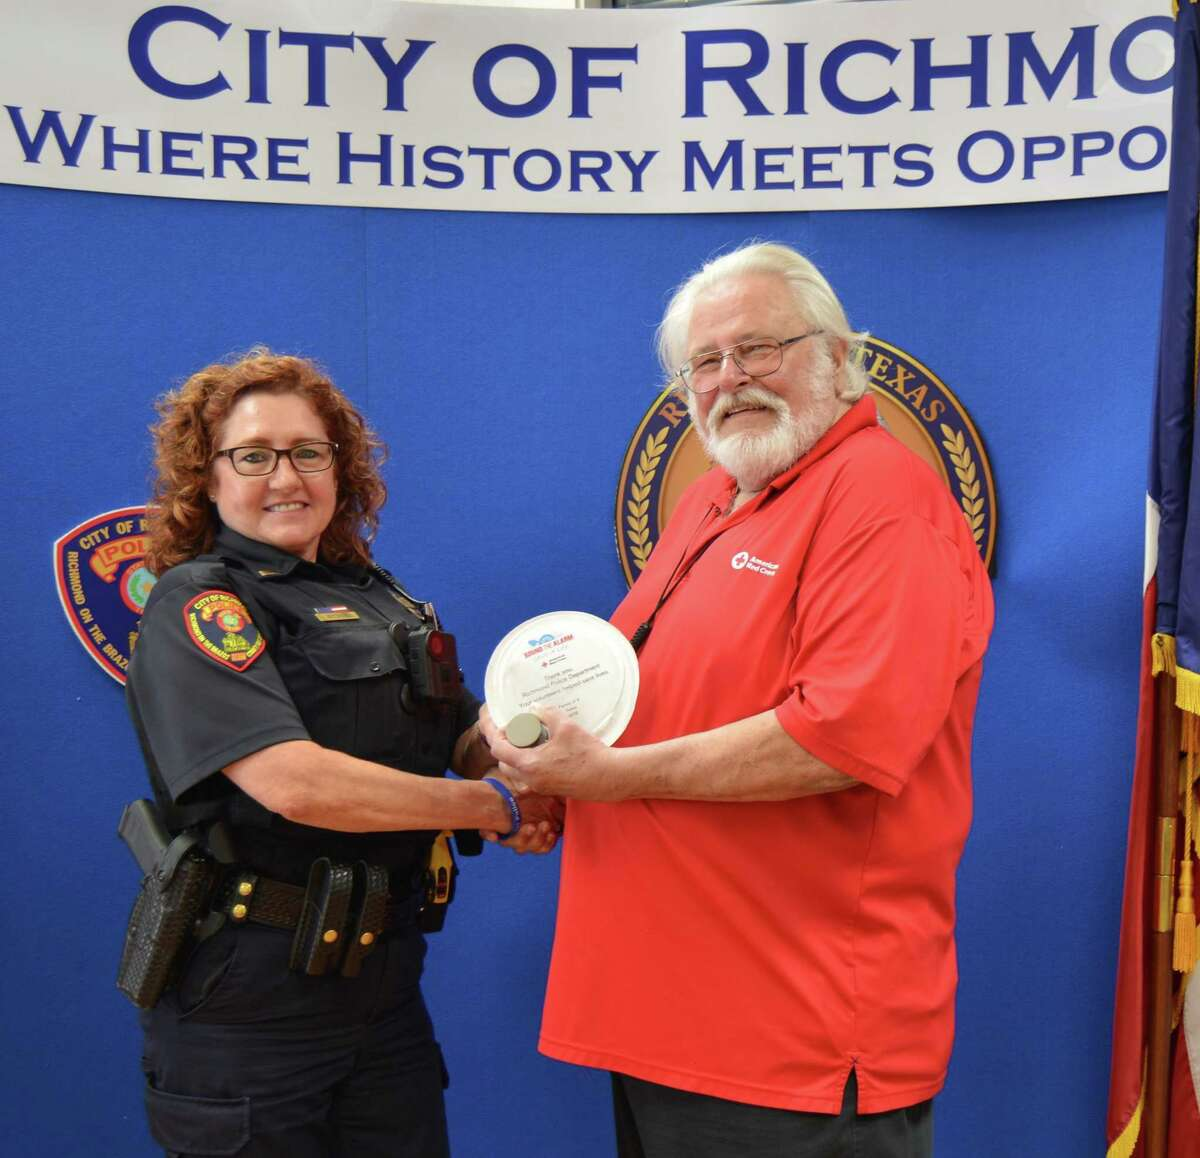 Lt. Diana Butinski of the Richmond Police Department receives the Partner Life Saving Award from Dave Spilman of the American Red Cross.